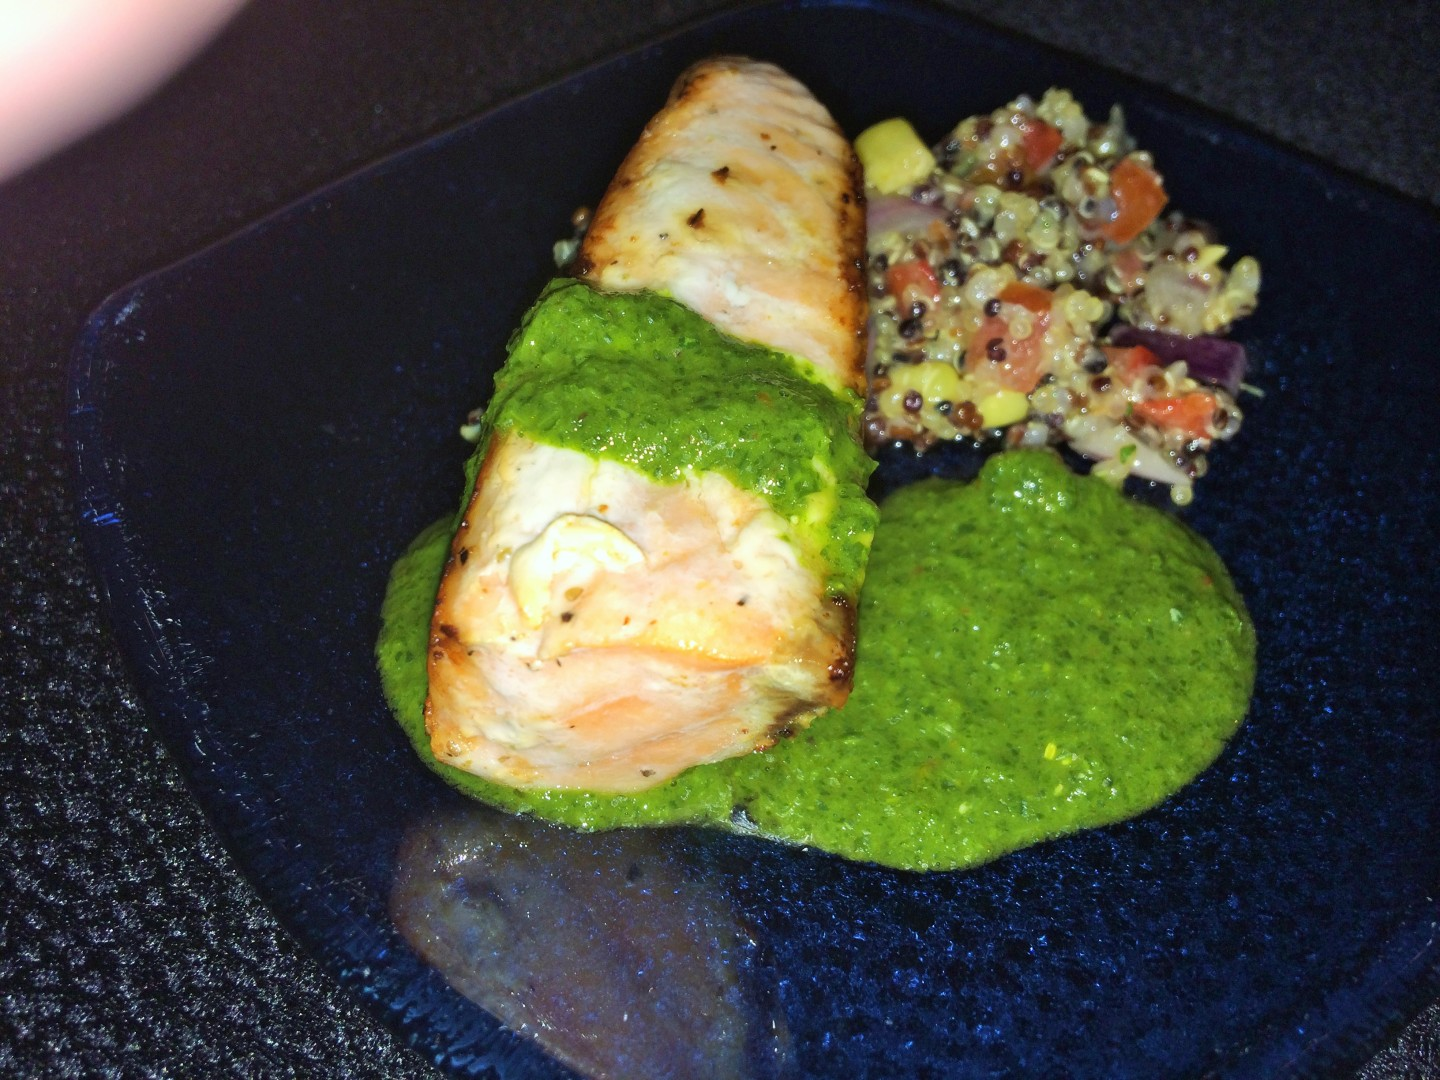 Roasted Verlasso salmon with quinoa salad and arugula chimichurri